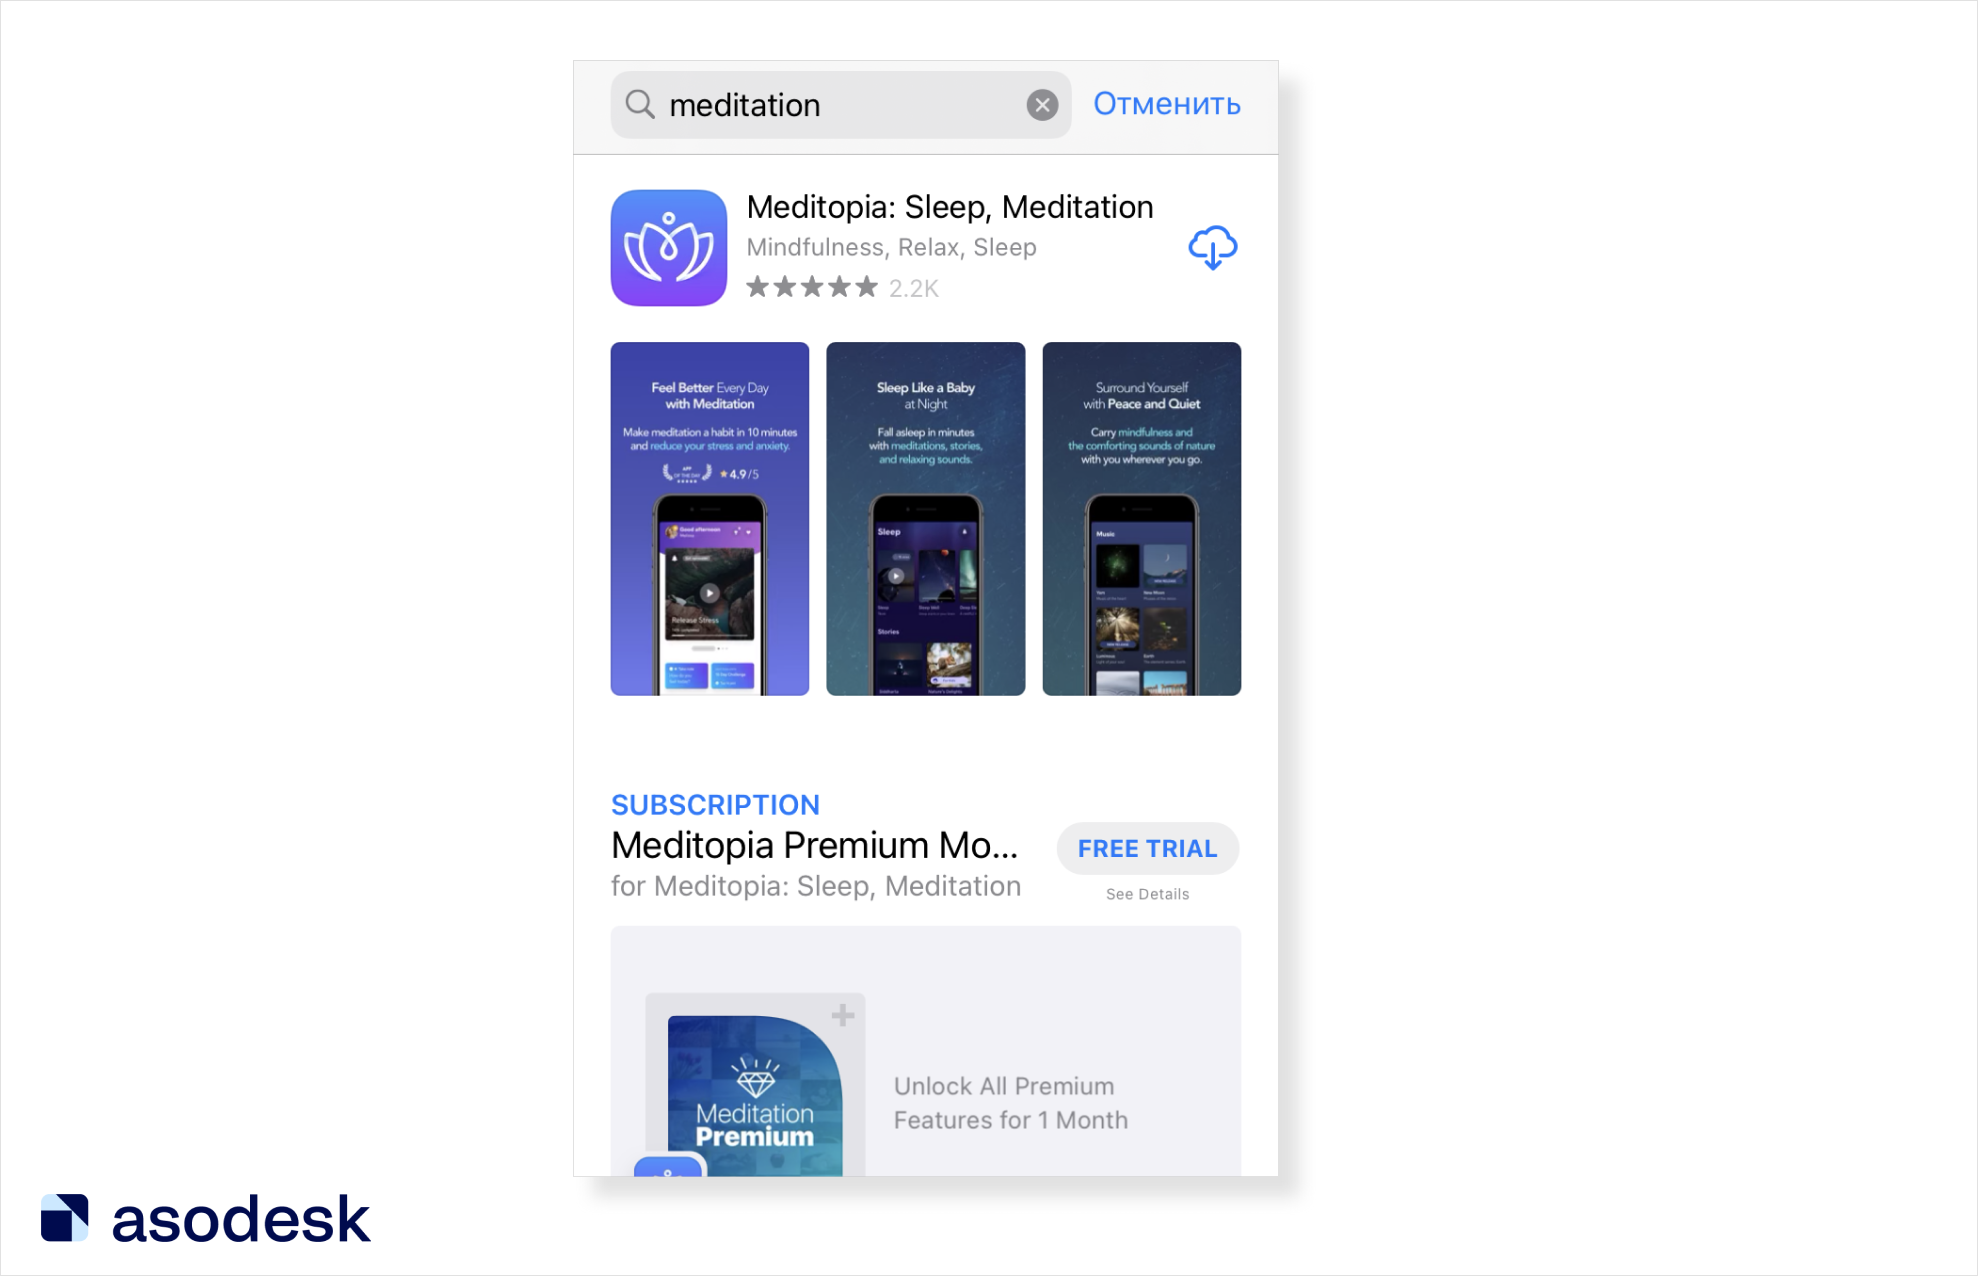 Using the in-app purchases feature in the App Store allows you to take up more space in the search results